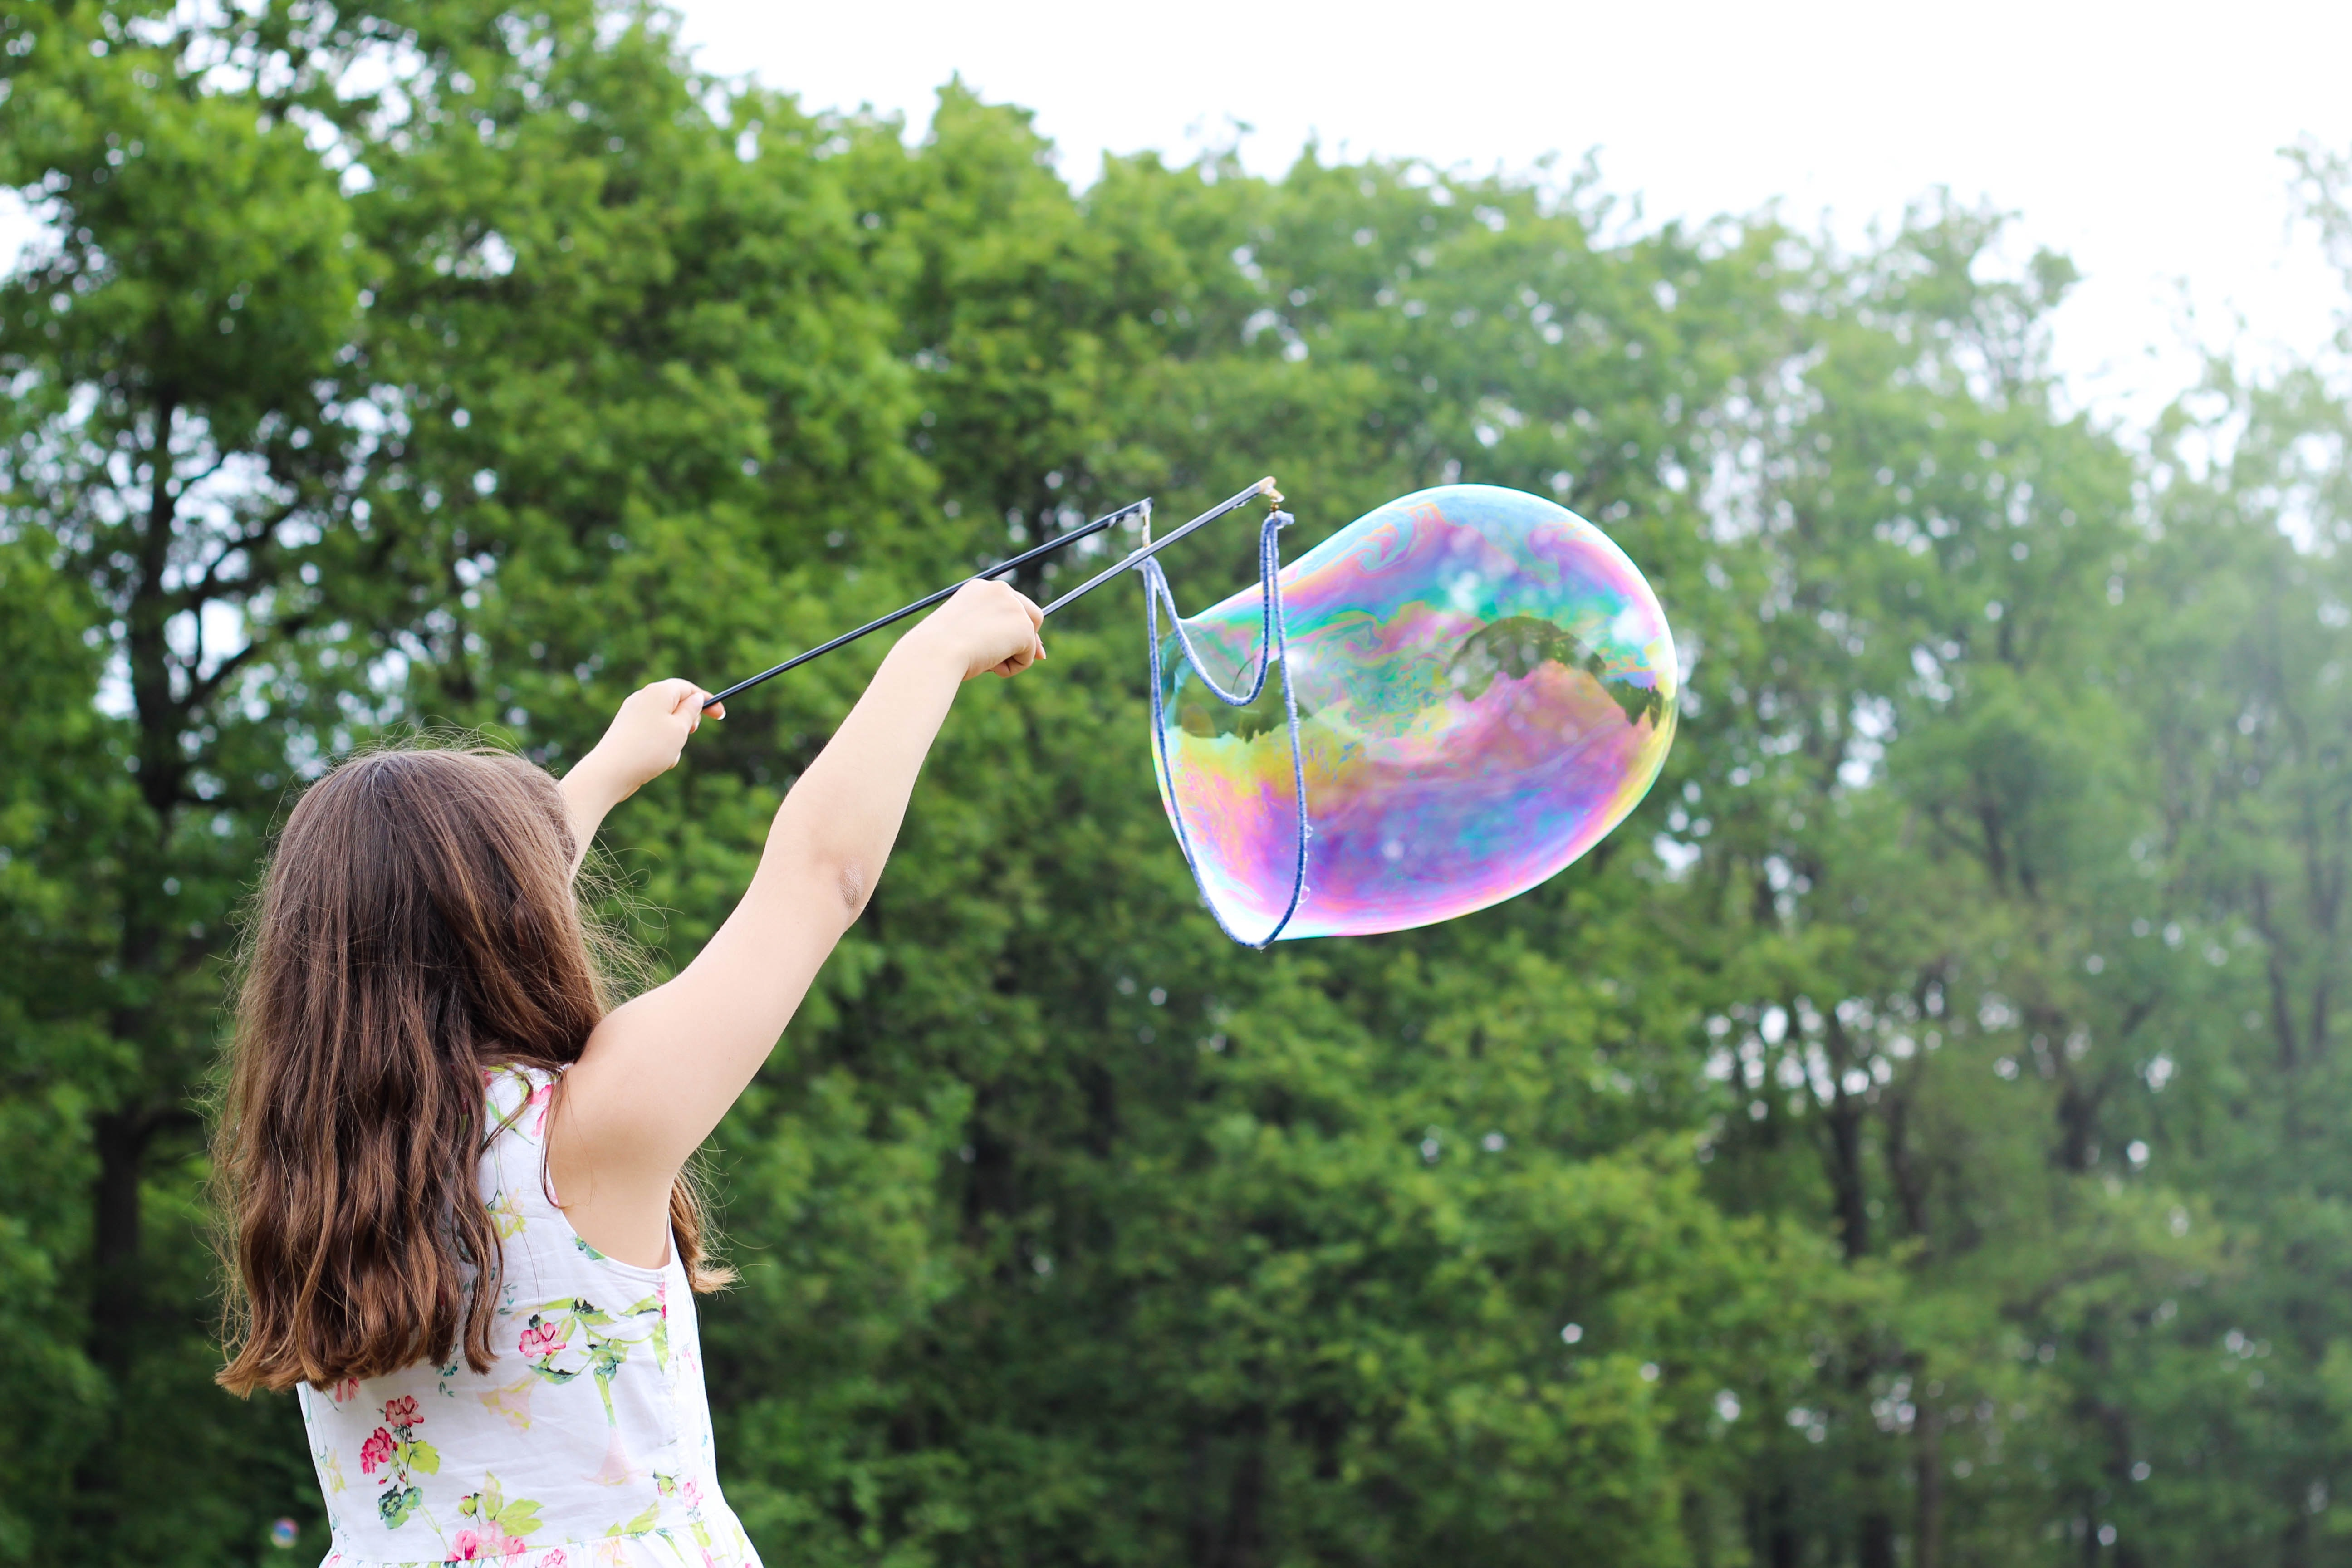 Female child using a large bubble wand to form a big soap bubble in the air